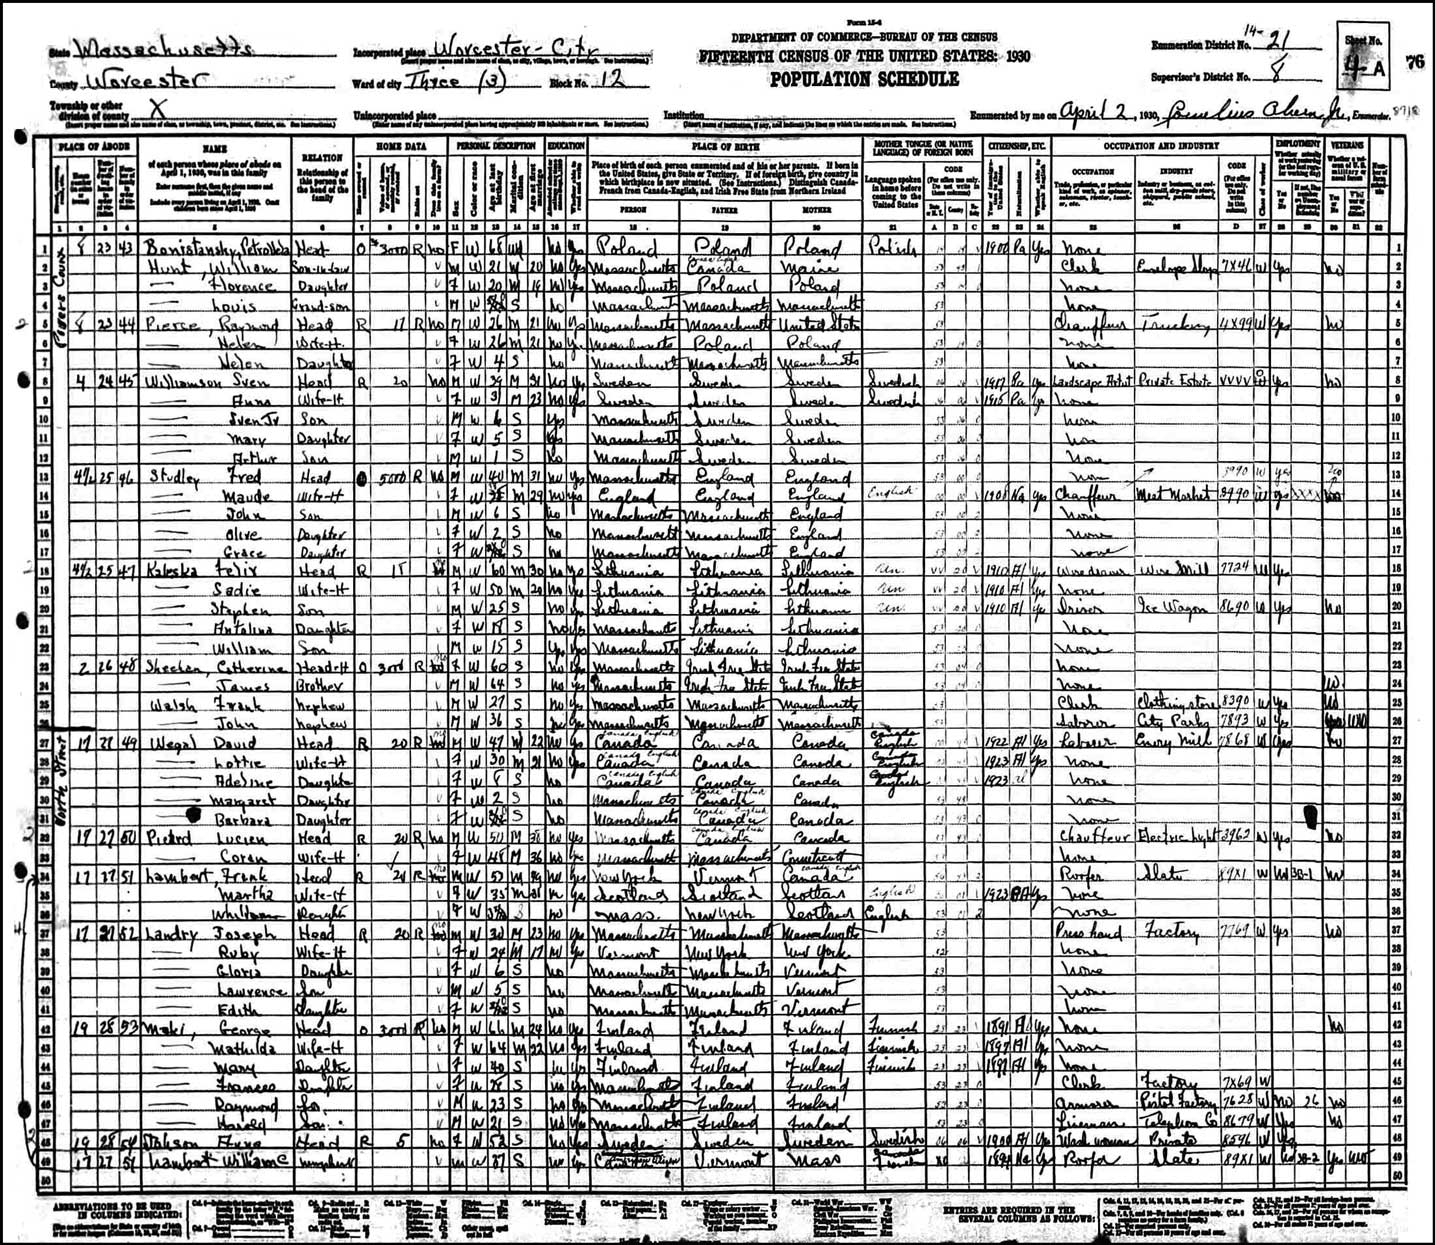 US Federal Census Record for Petronela Bonislawski - 1930